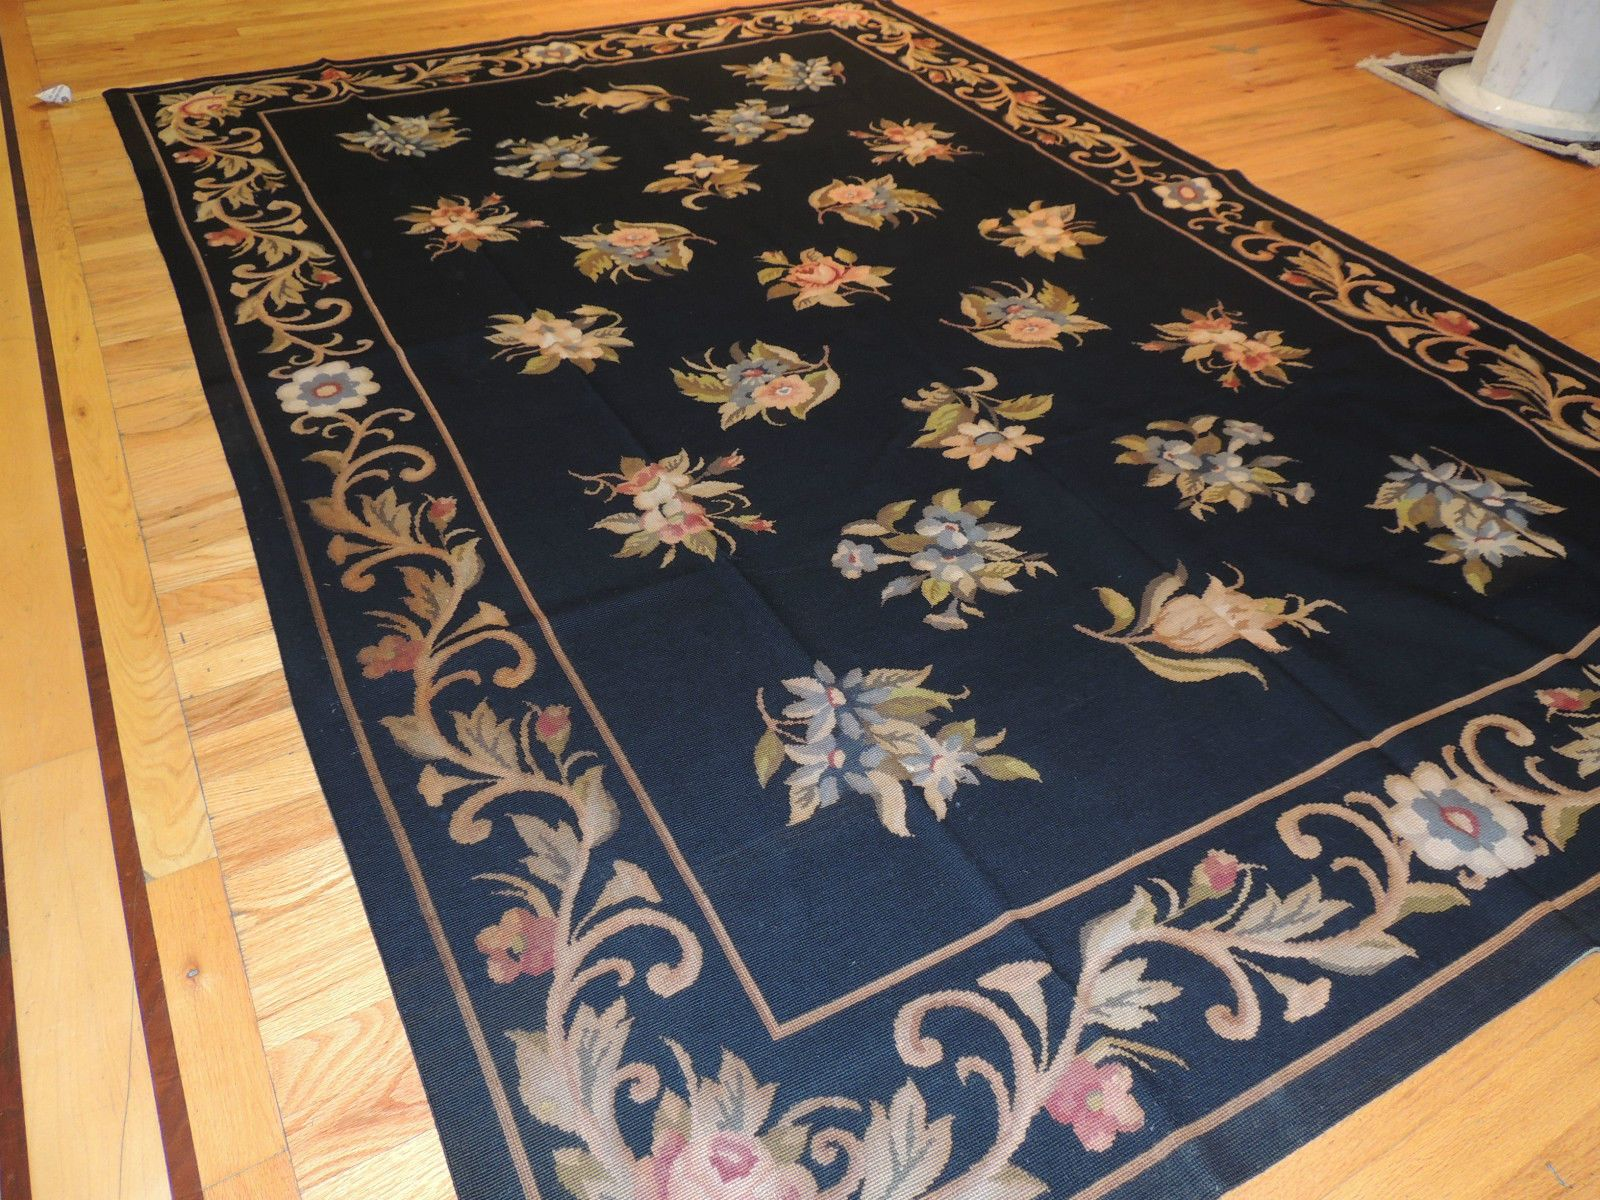 Splendid French Aubusson Design Needlepoint Oriental Area Rug Carpet 6x9 Black